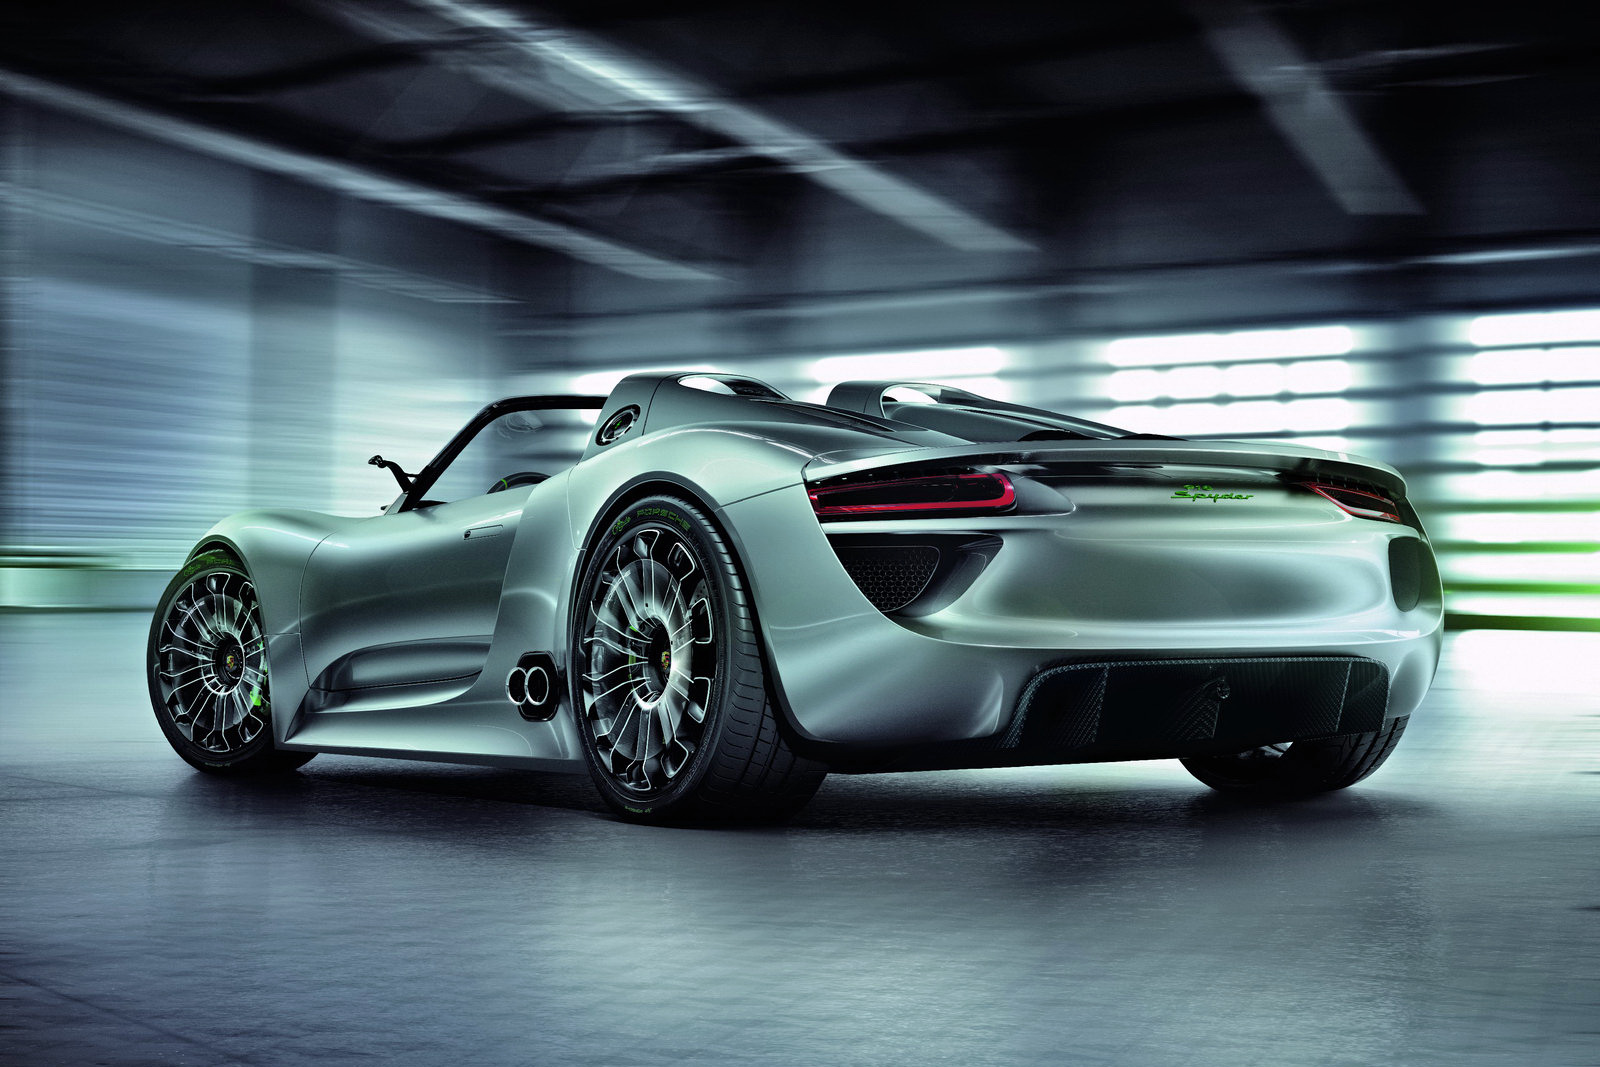 porsche j recebe encomendas de seu modelo 918 spyder hybrid. Black Bedroom Furniture Sets. Home Design Ideas